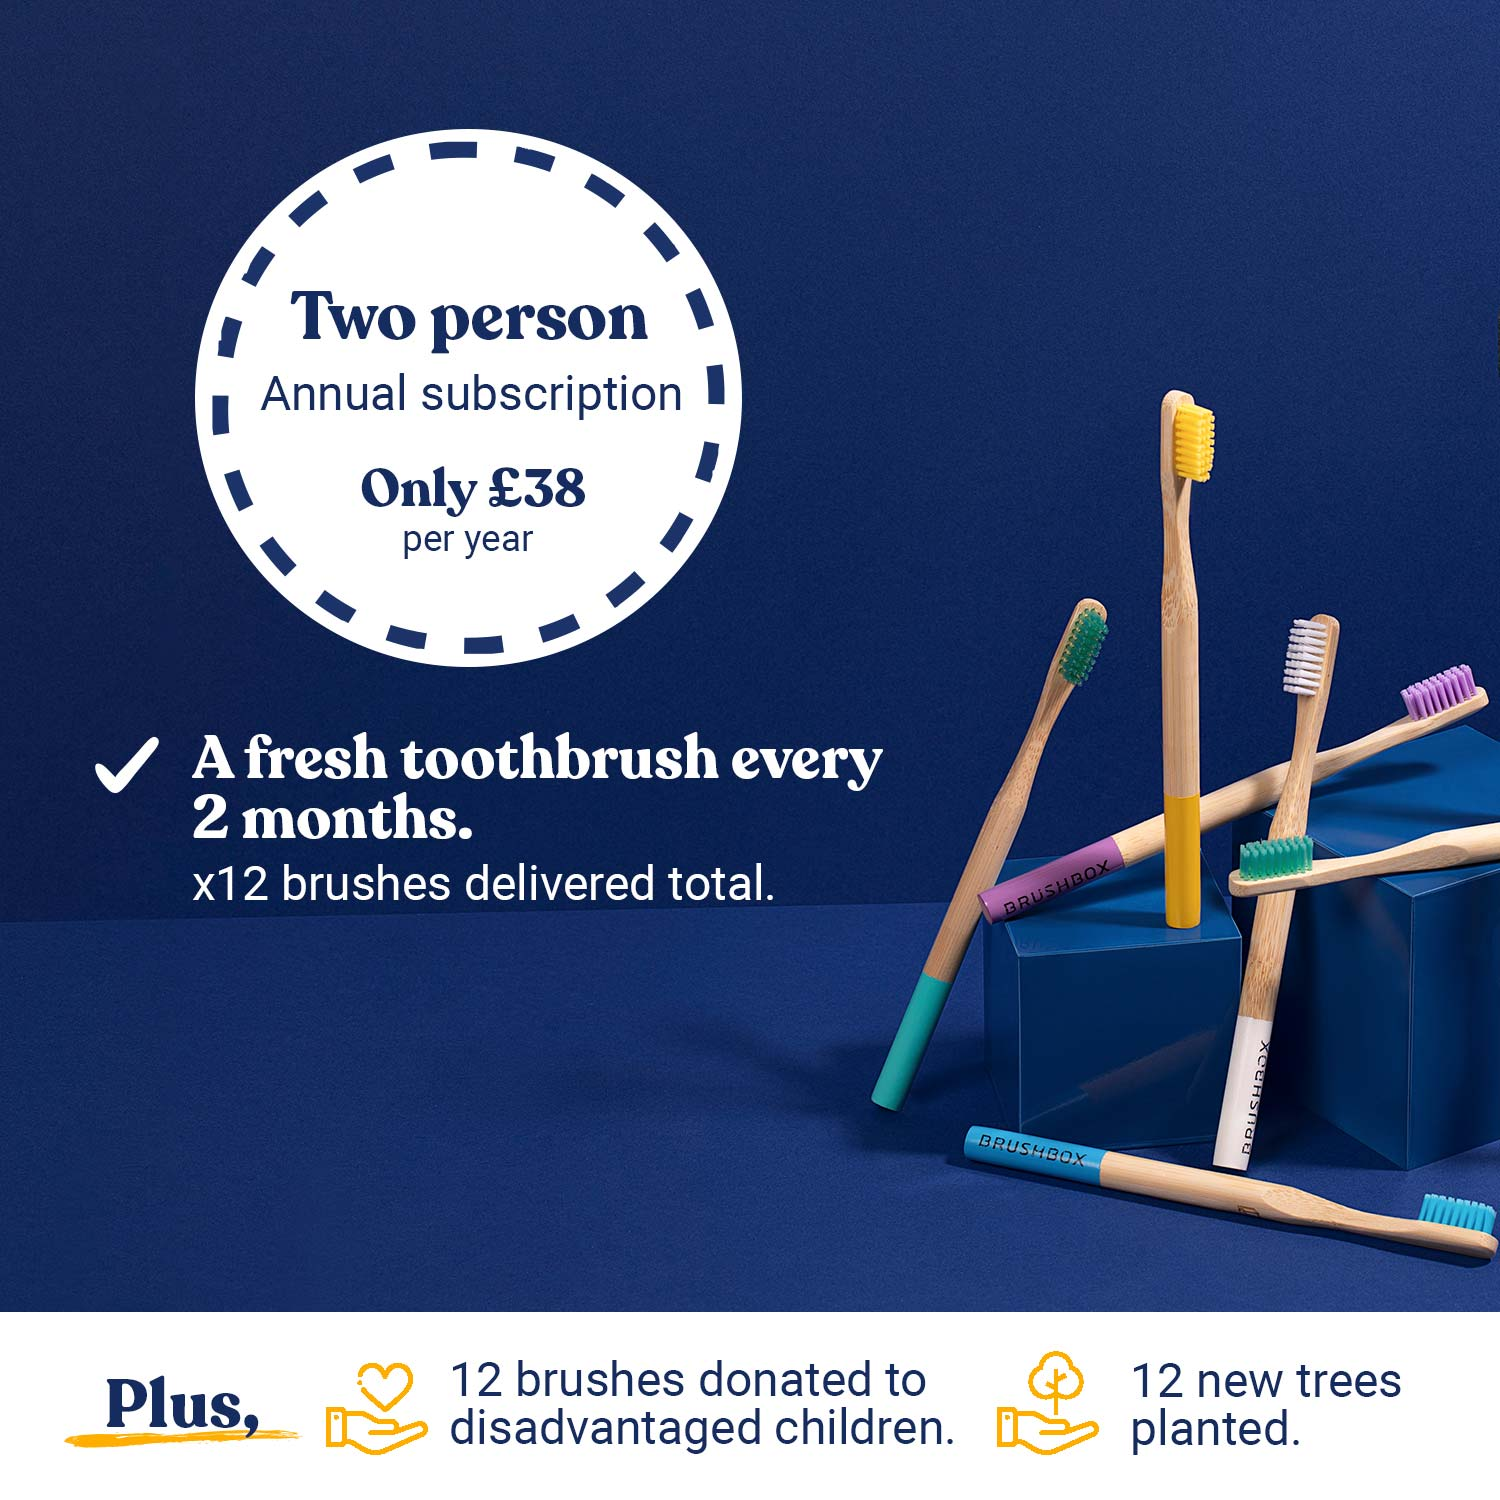 Smooth Bamboo Toothbrush - Annual Subscription - For Two People